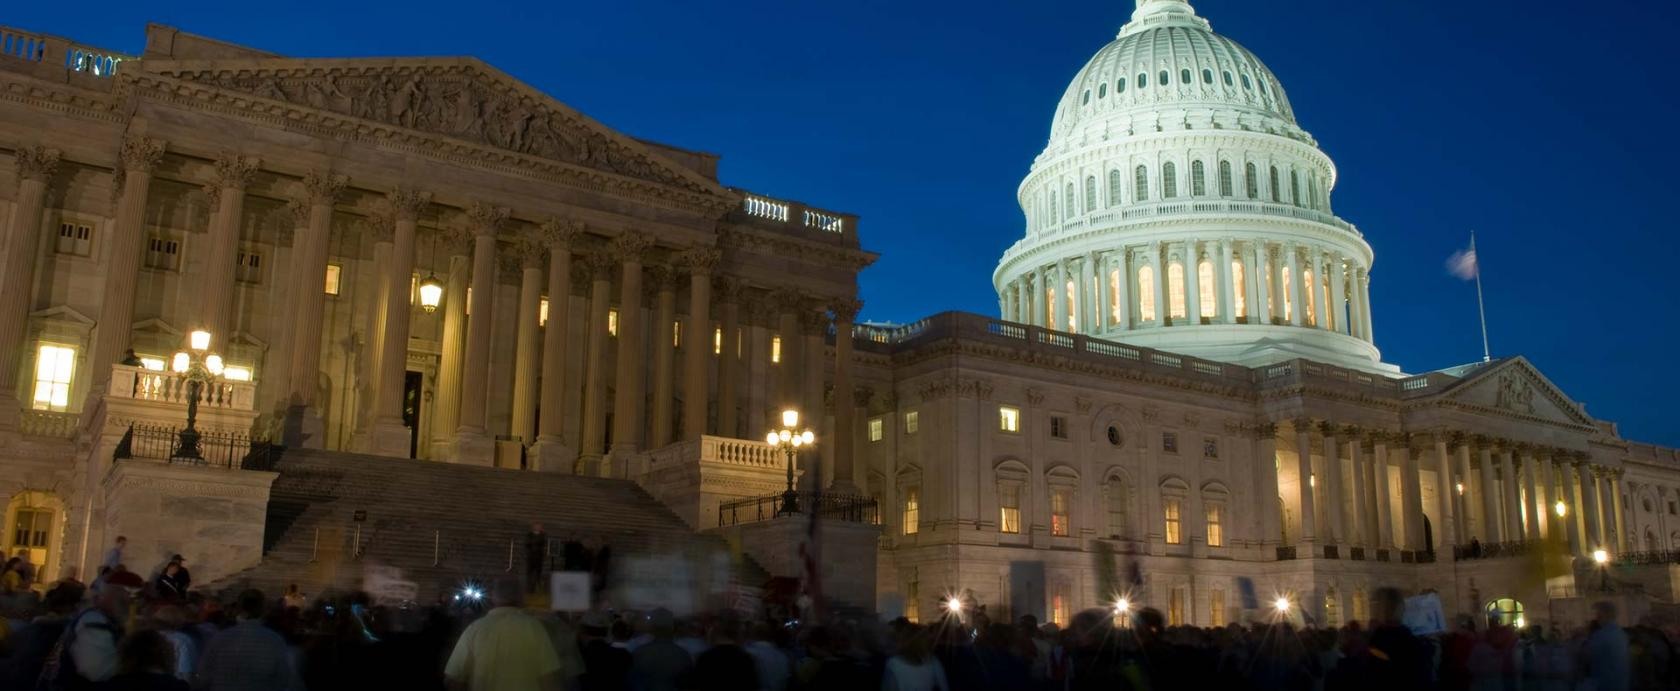 The U.S. Capitol Building at Night - Crowd of People Outside